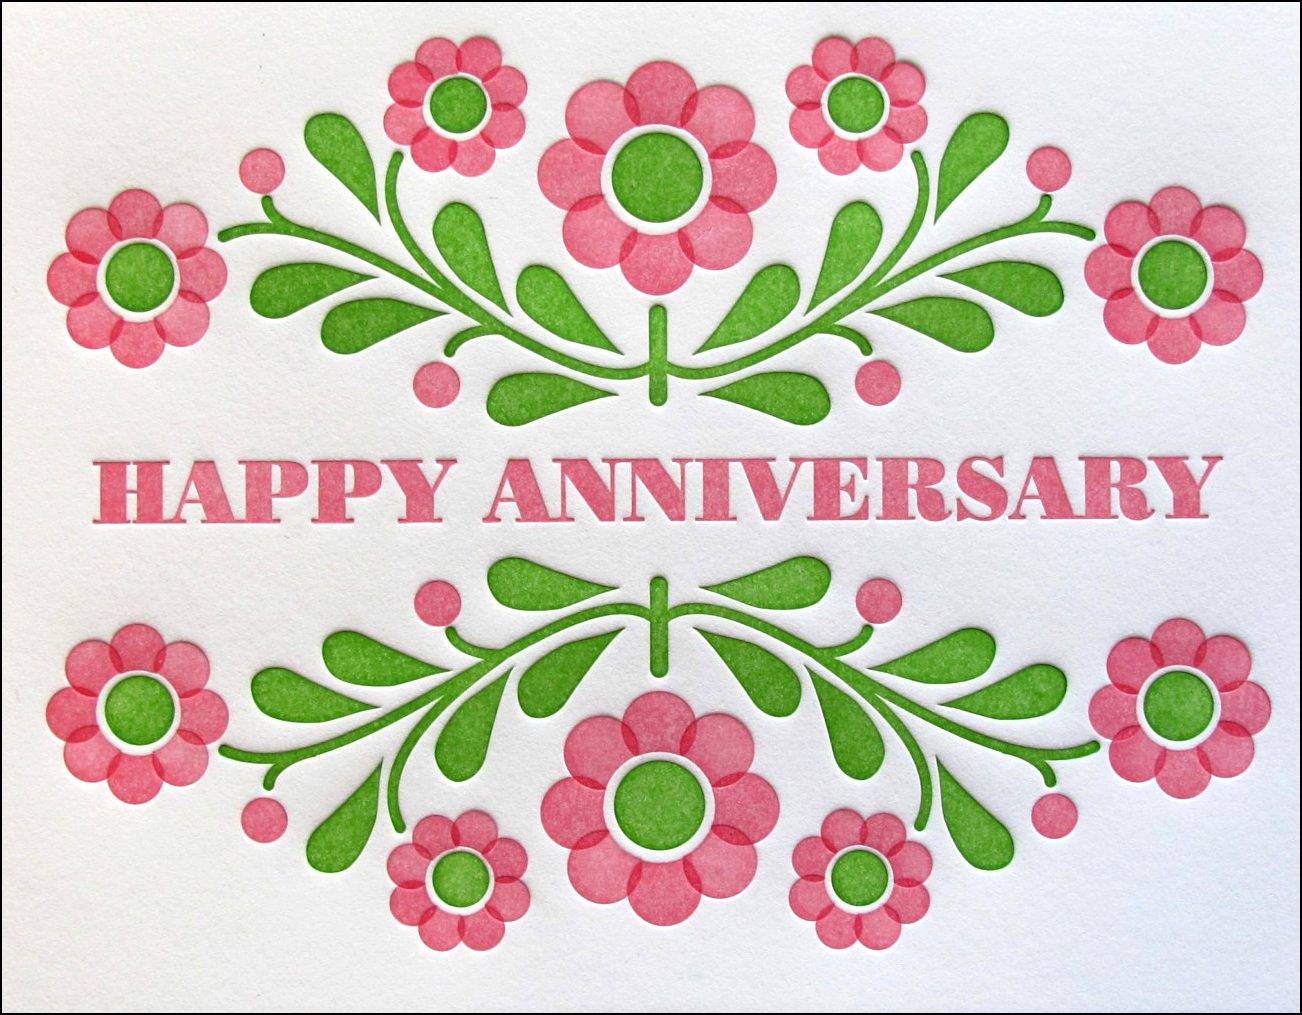 Http 4alhotgallery Blogspot Com 2013 08 Happy Marriage Anniversary Greeting Html